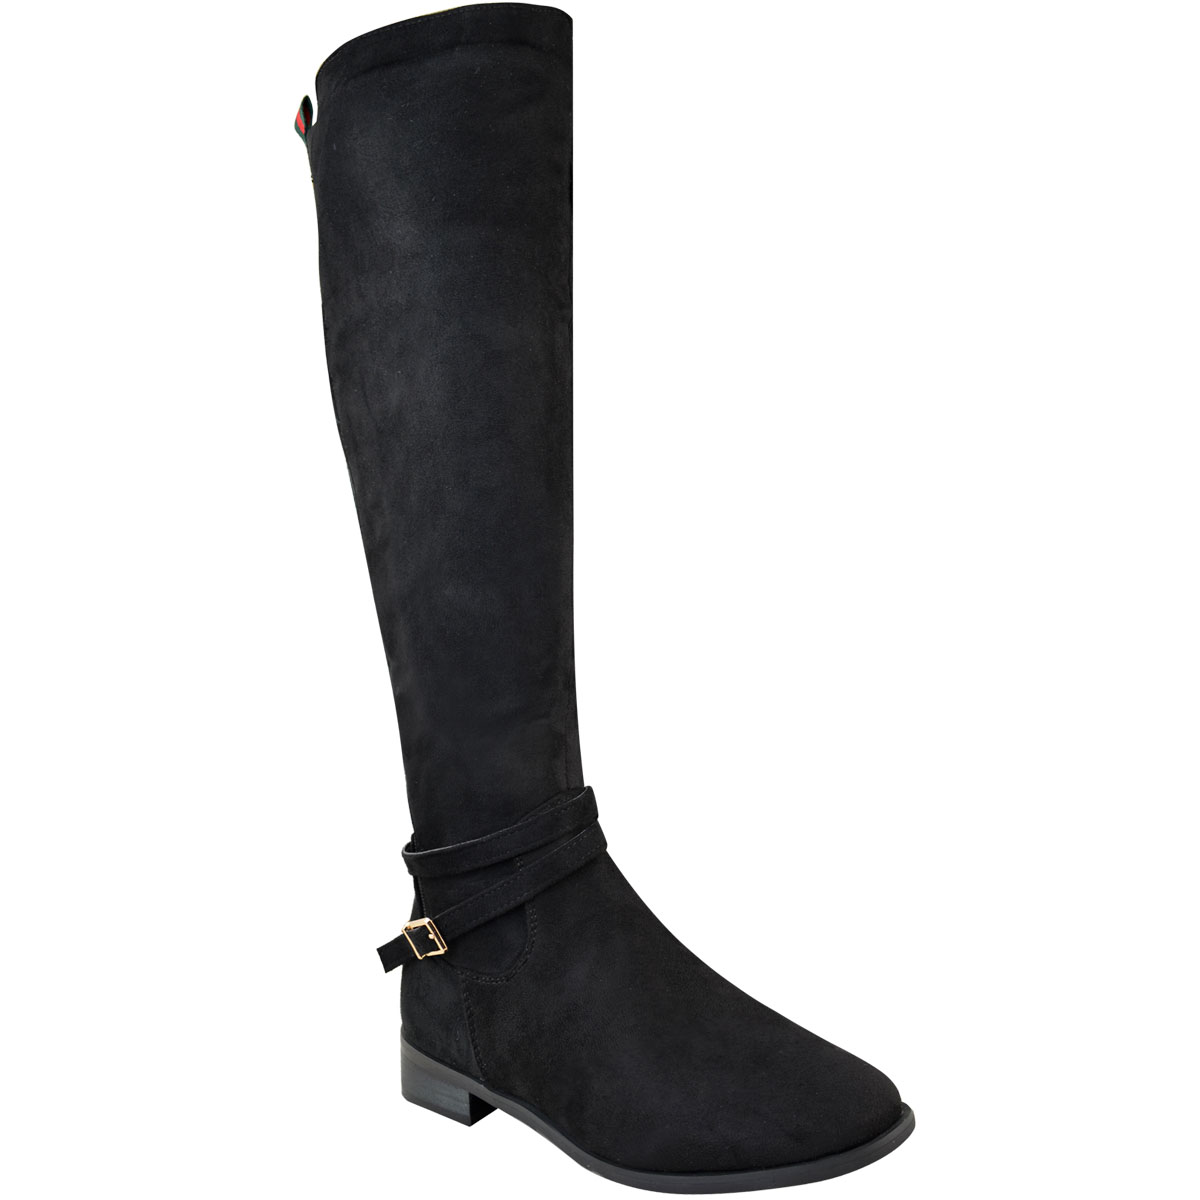 Womens-Ladies-Flat-Stretch-Knee-High-Riding-Boots-Grip-Sole-Winter-Shoes-Size-UK Indexbild 9